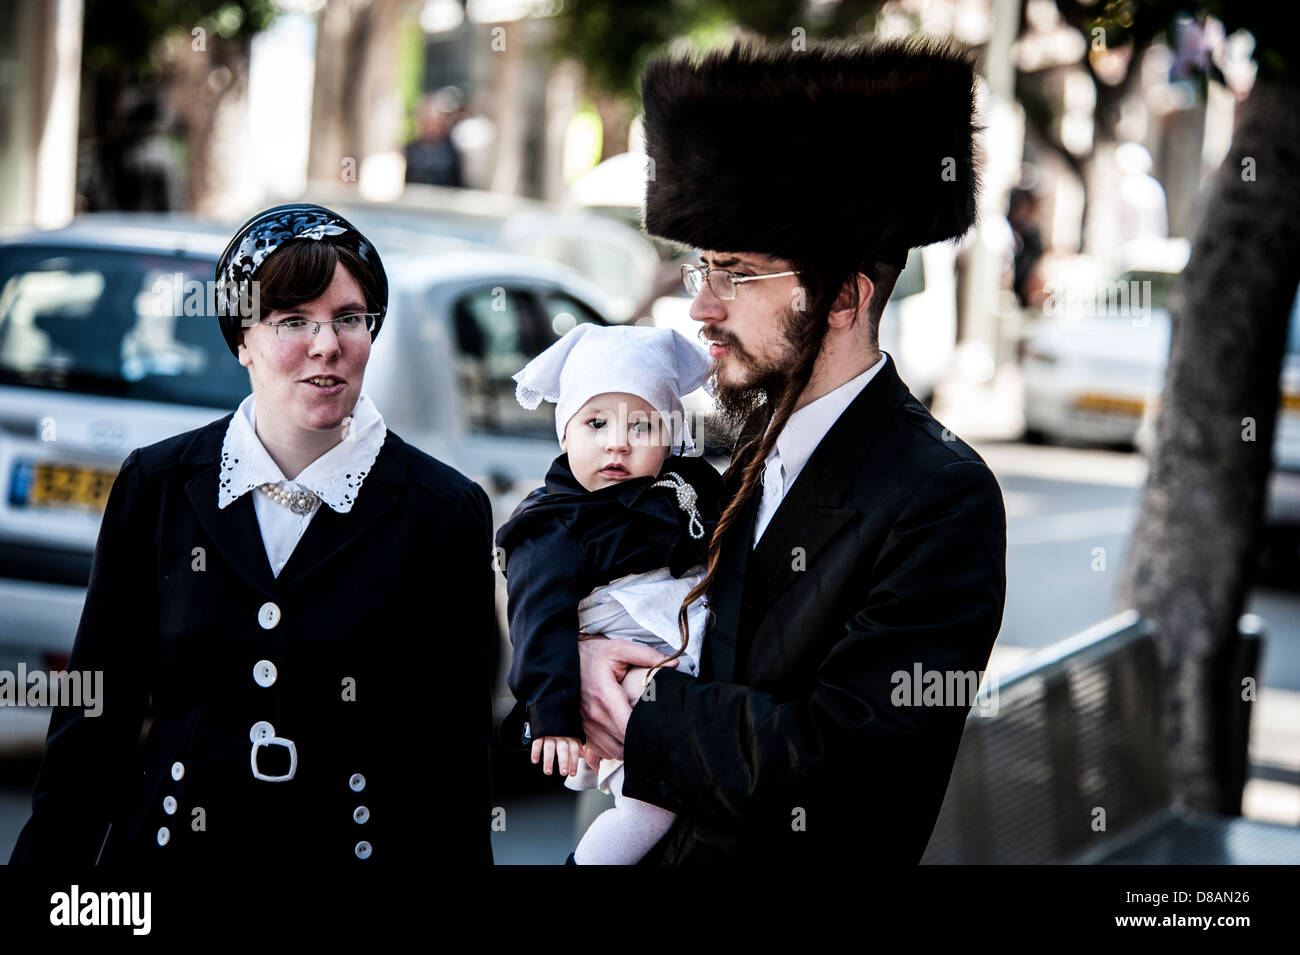 A Hassidic family in Purim costume Photographed in Bnei Brak, Israel - Stock Image